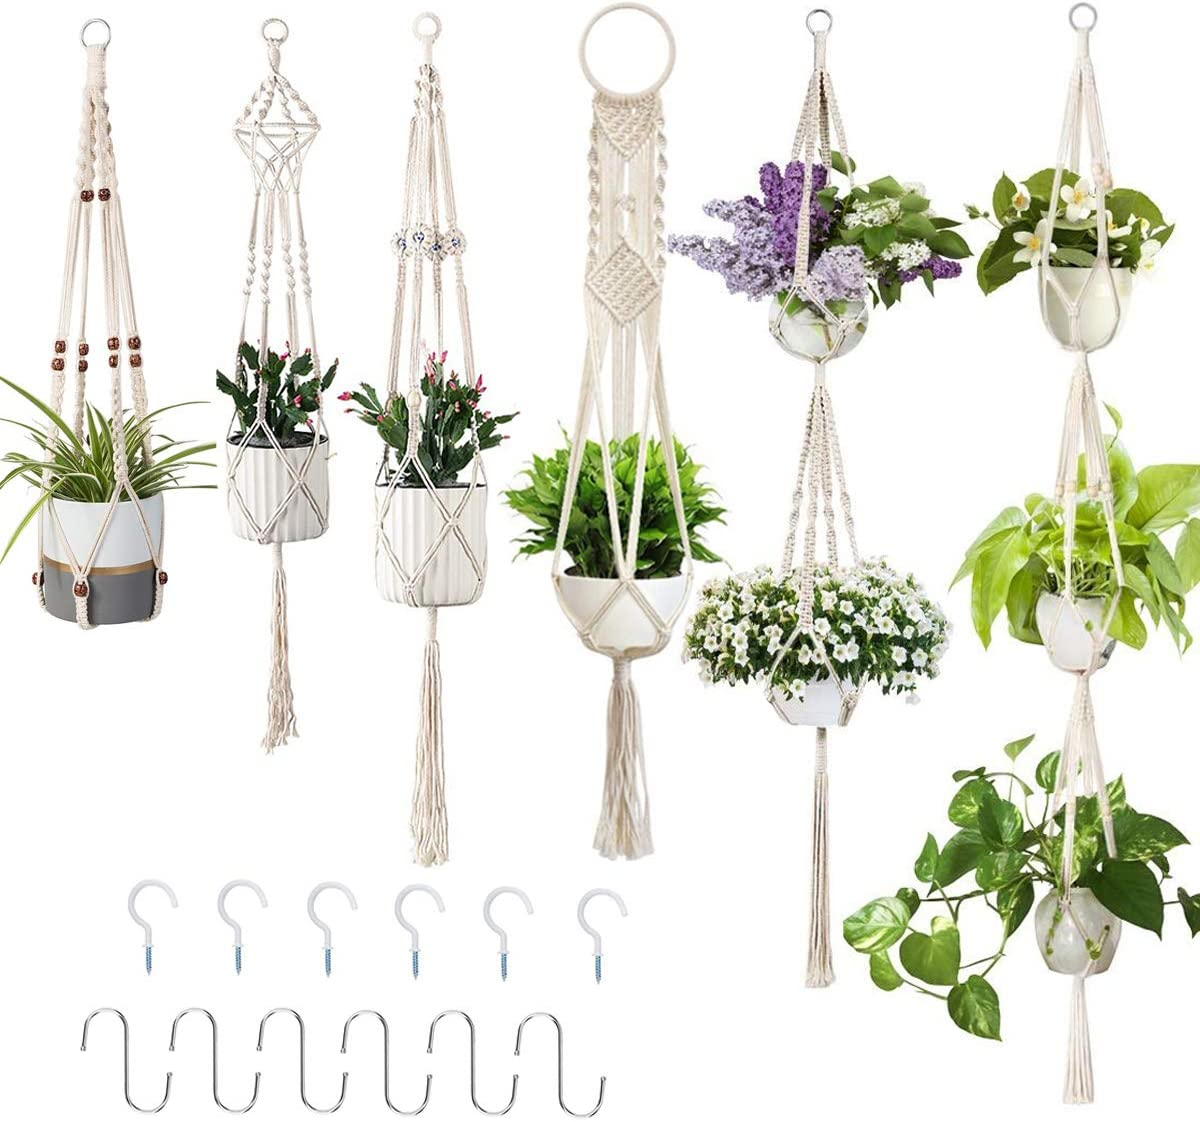 Macrame Plant Hanger, Yatuela Wall Hanging Plant Stand Handmade Cotton Rope Flower Pot Basket Net Holder for Indoor Outdoor Plants Boho Decoration with 12pcs Hooks, 6 Sizes in Different Designs, White